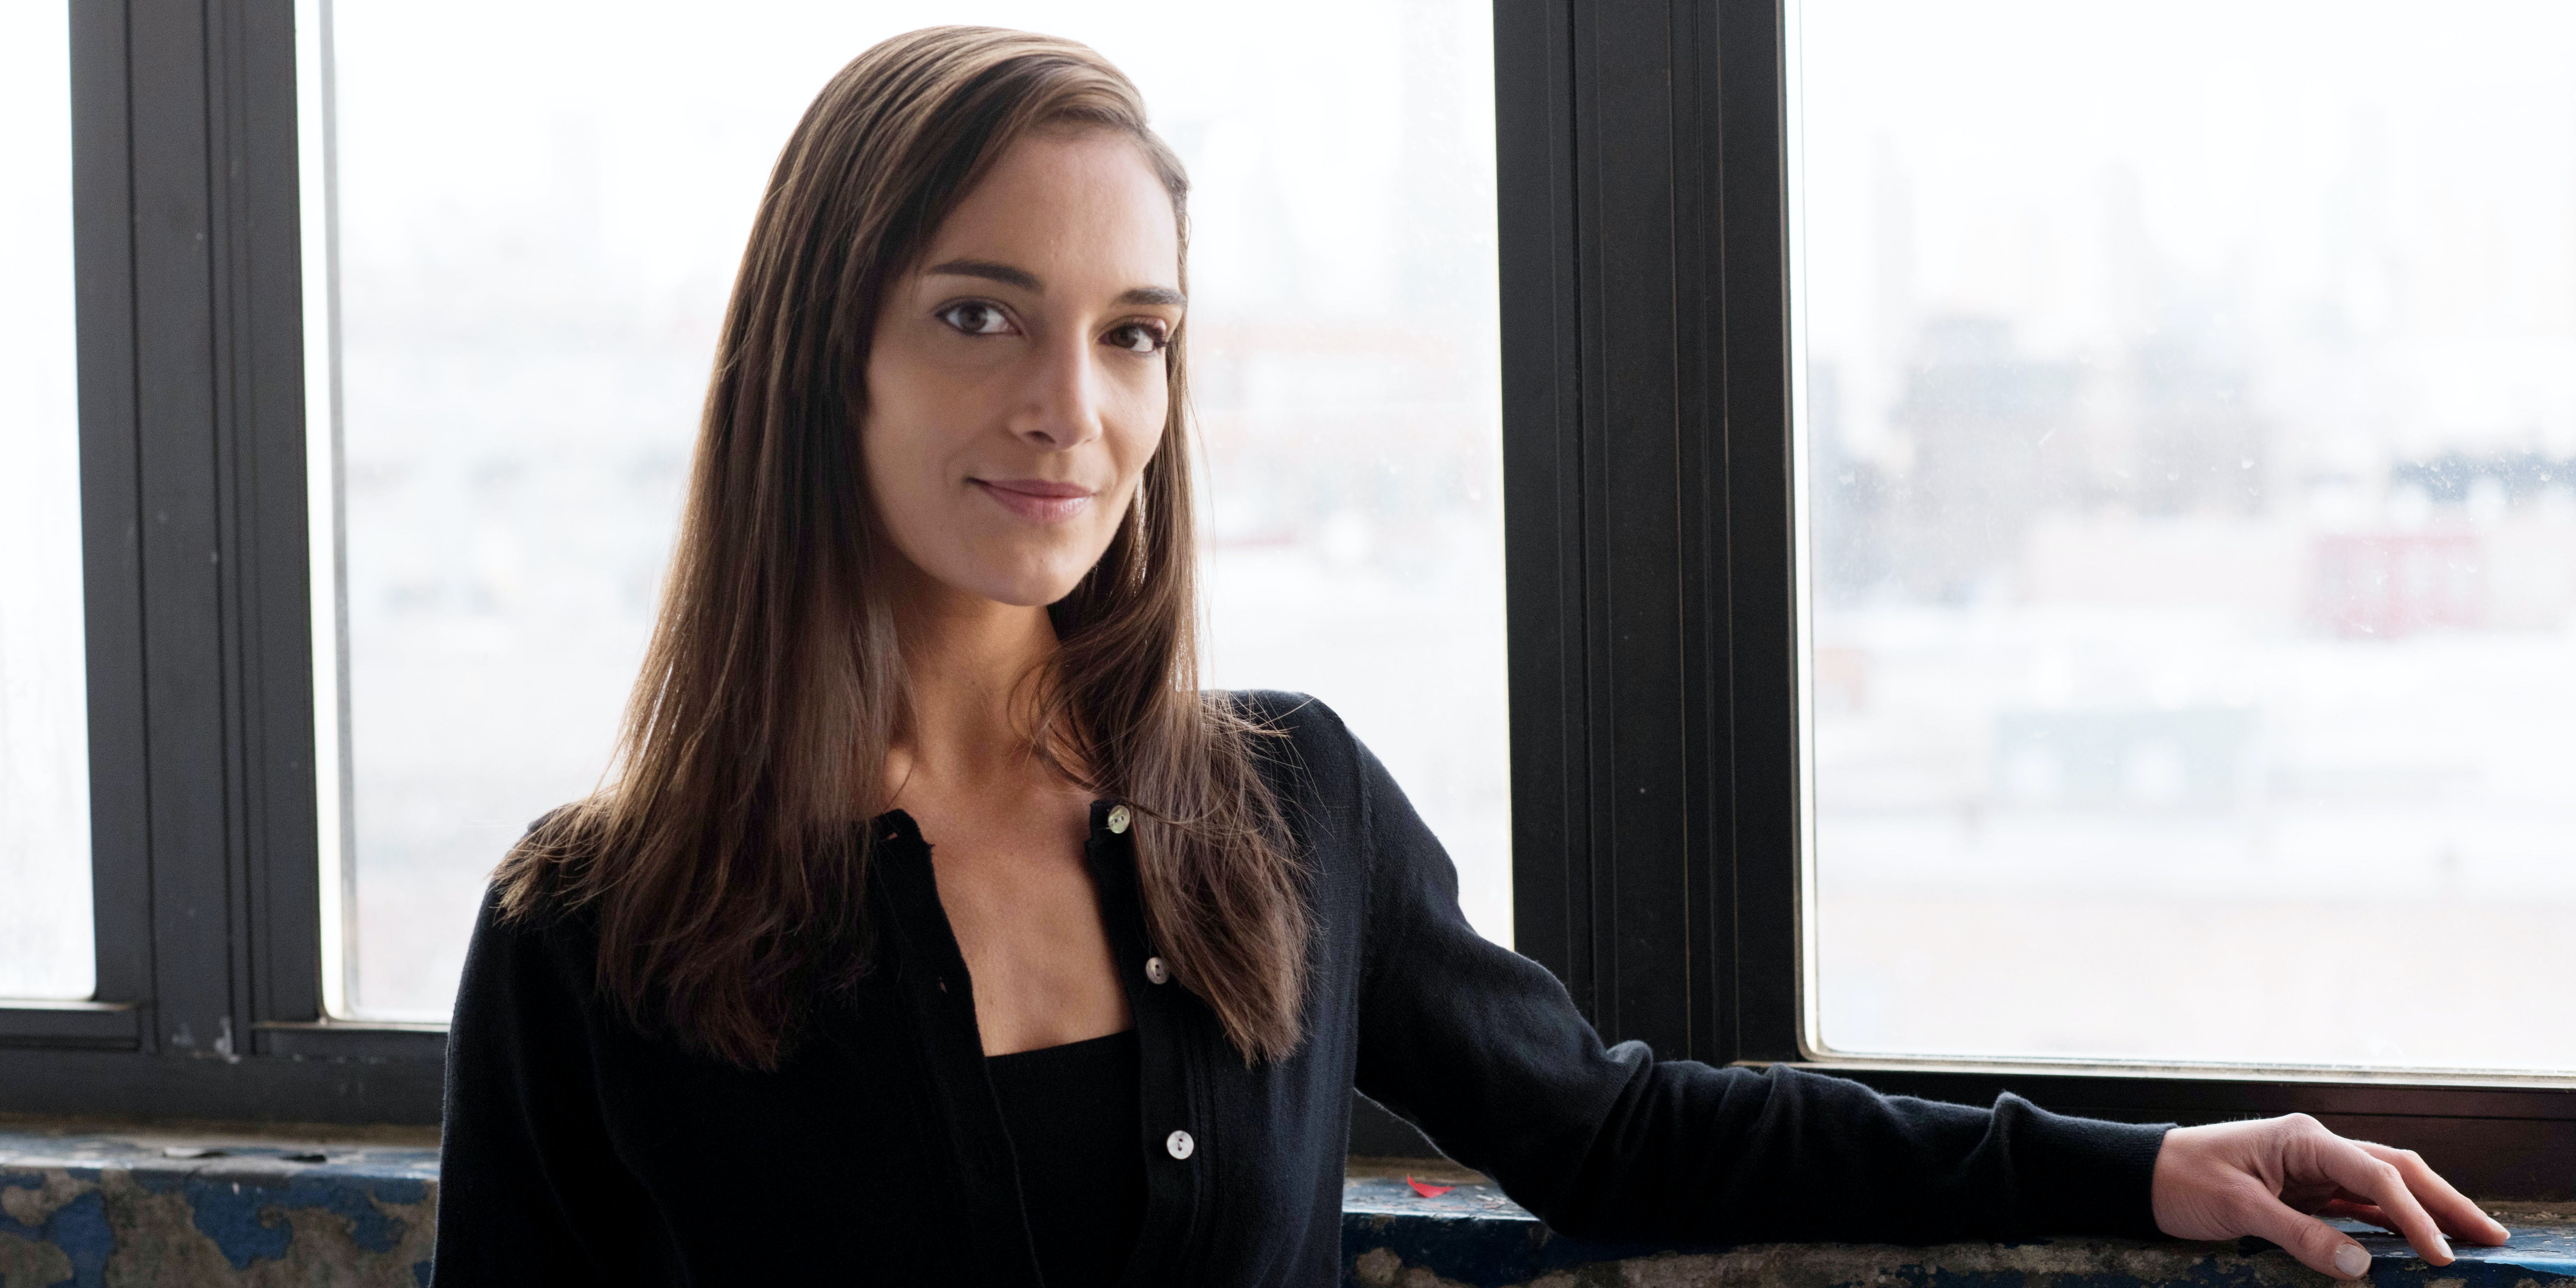 Photo Alex Purifoy Julia Salazar Campaign